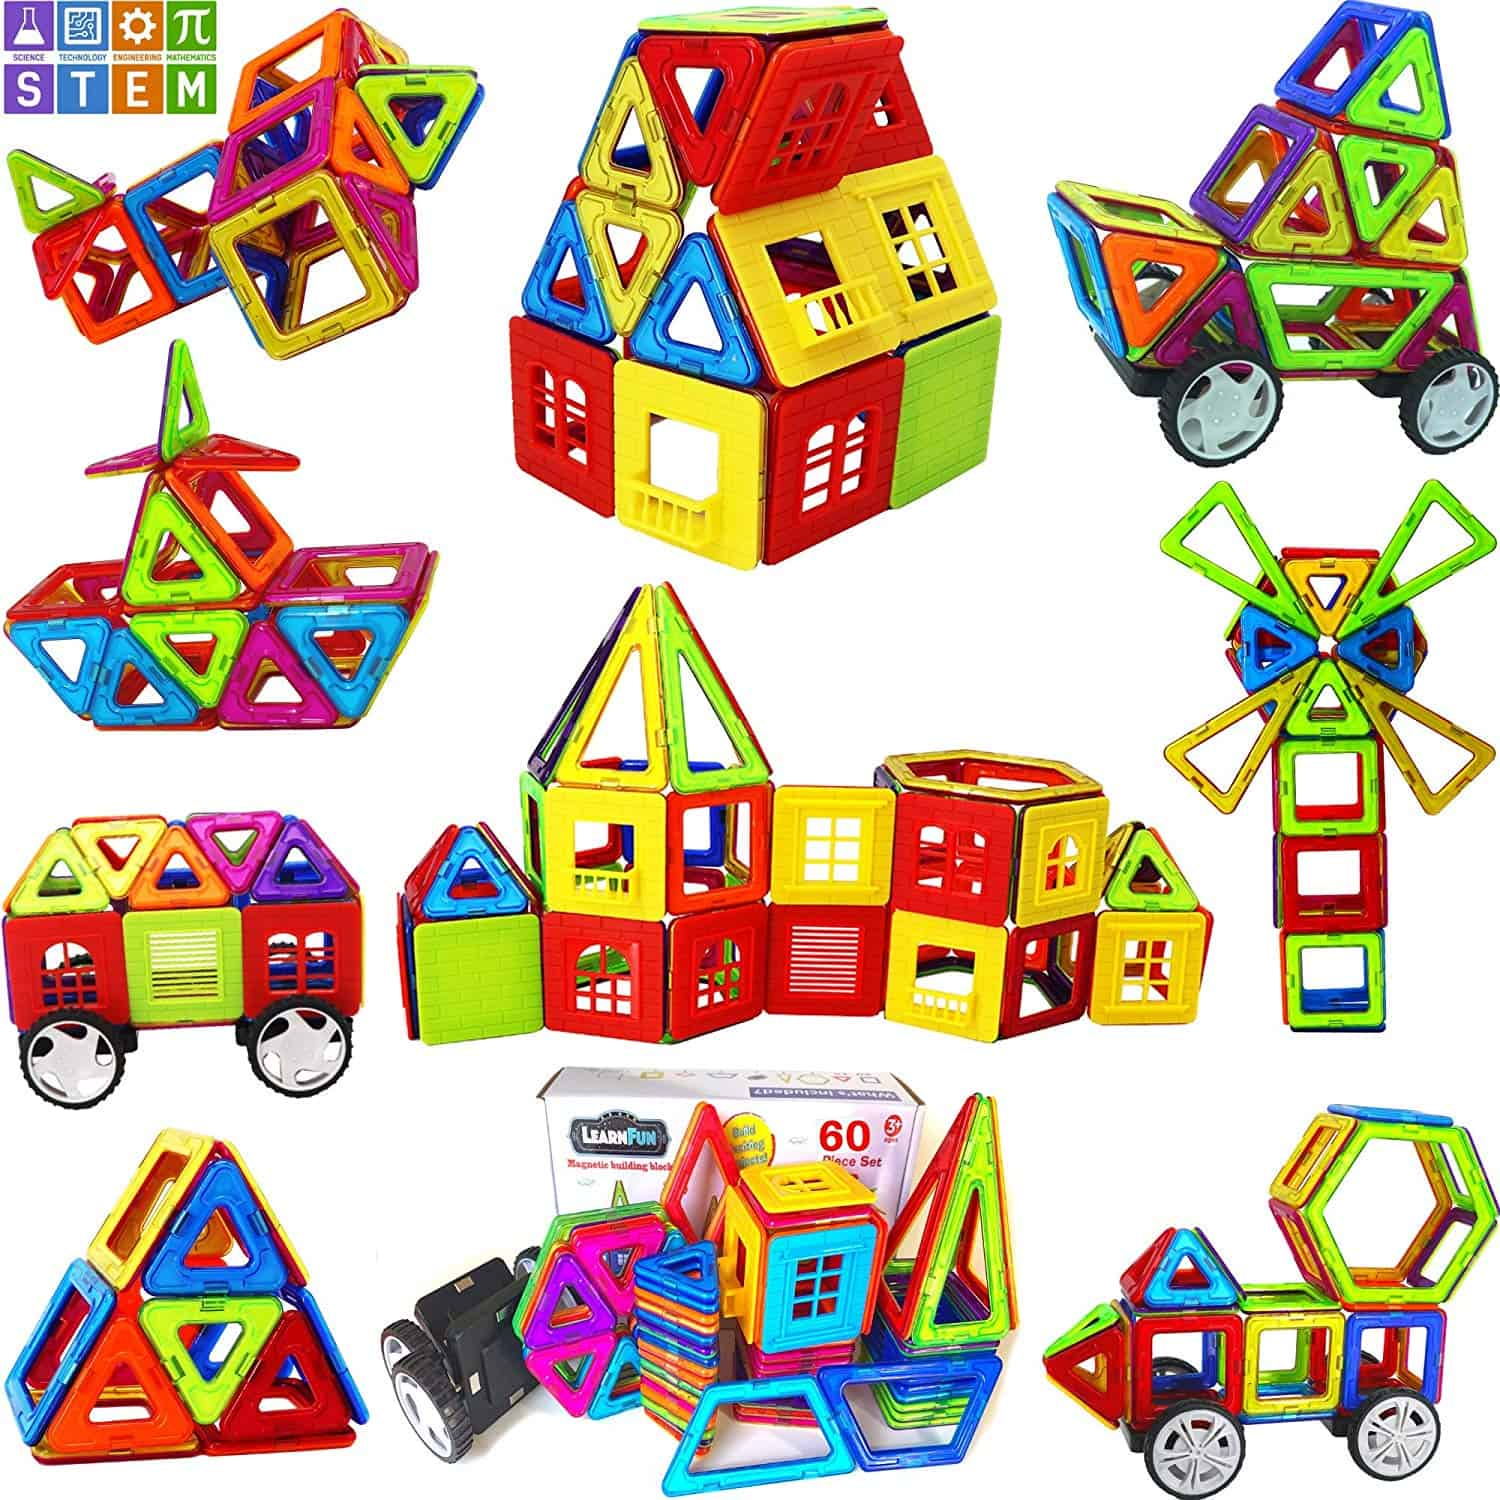 LearnFun Strong Magnetic Building Block Set